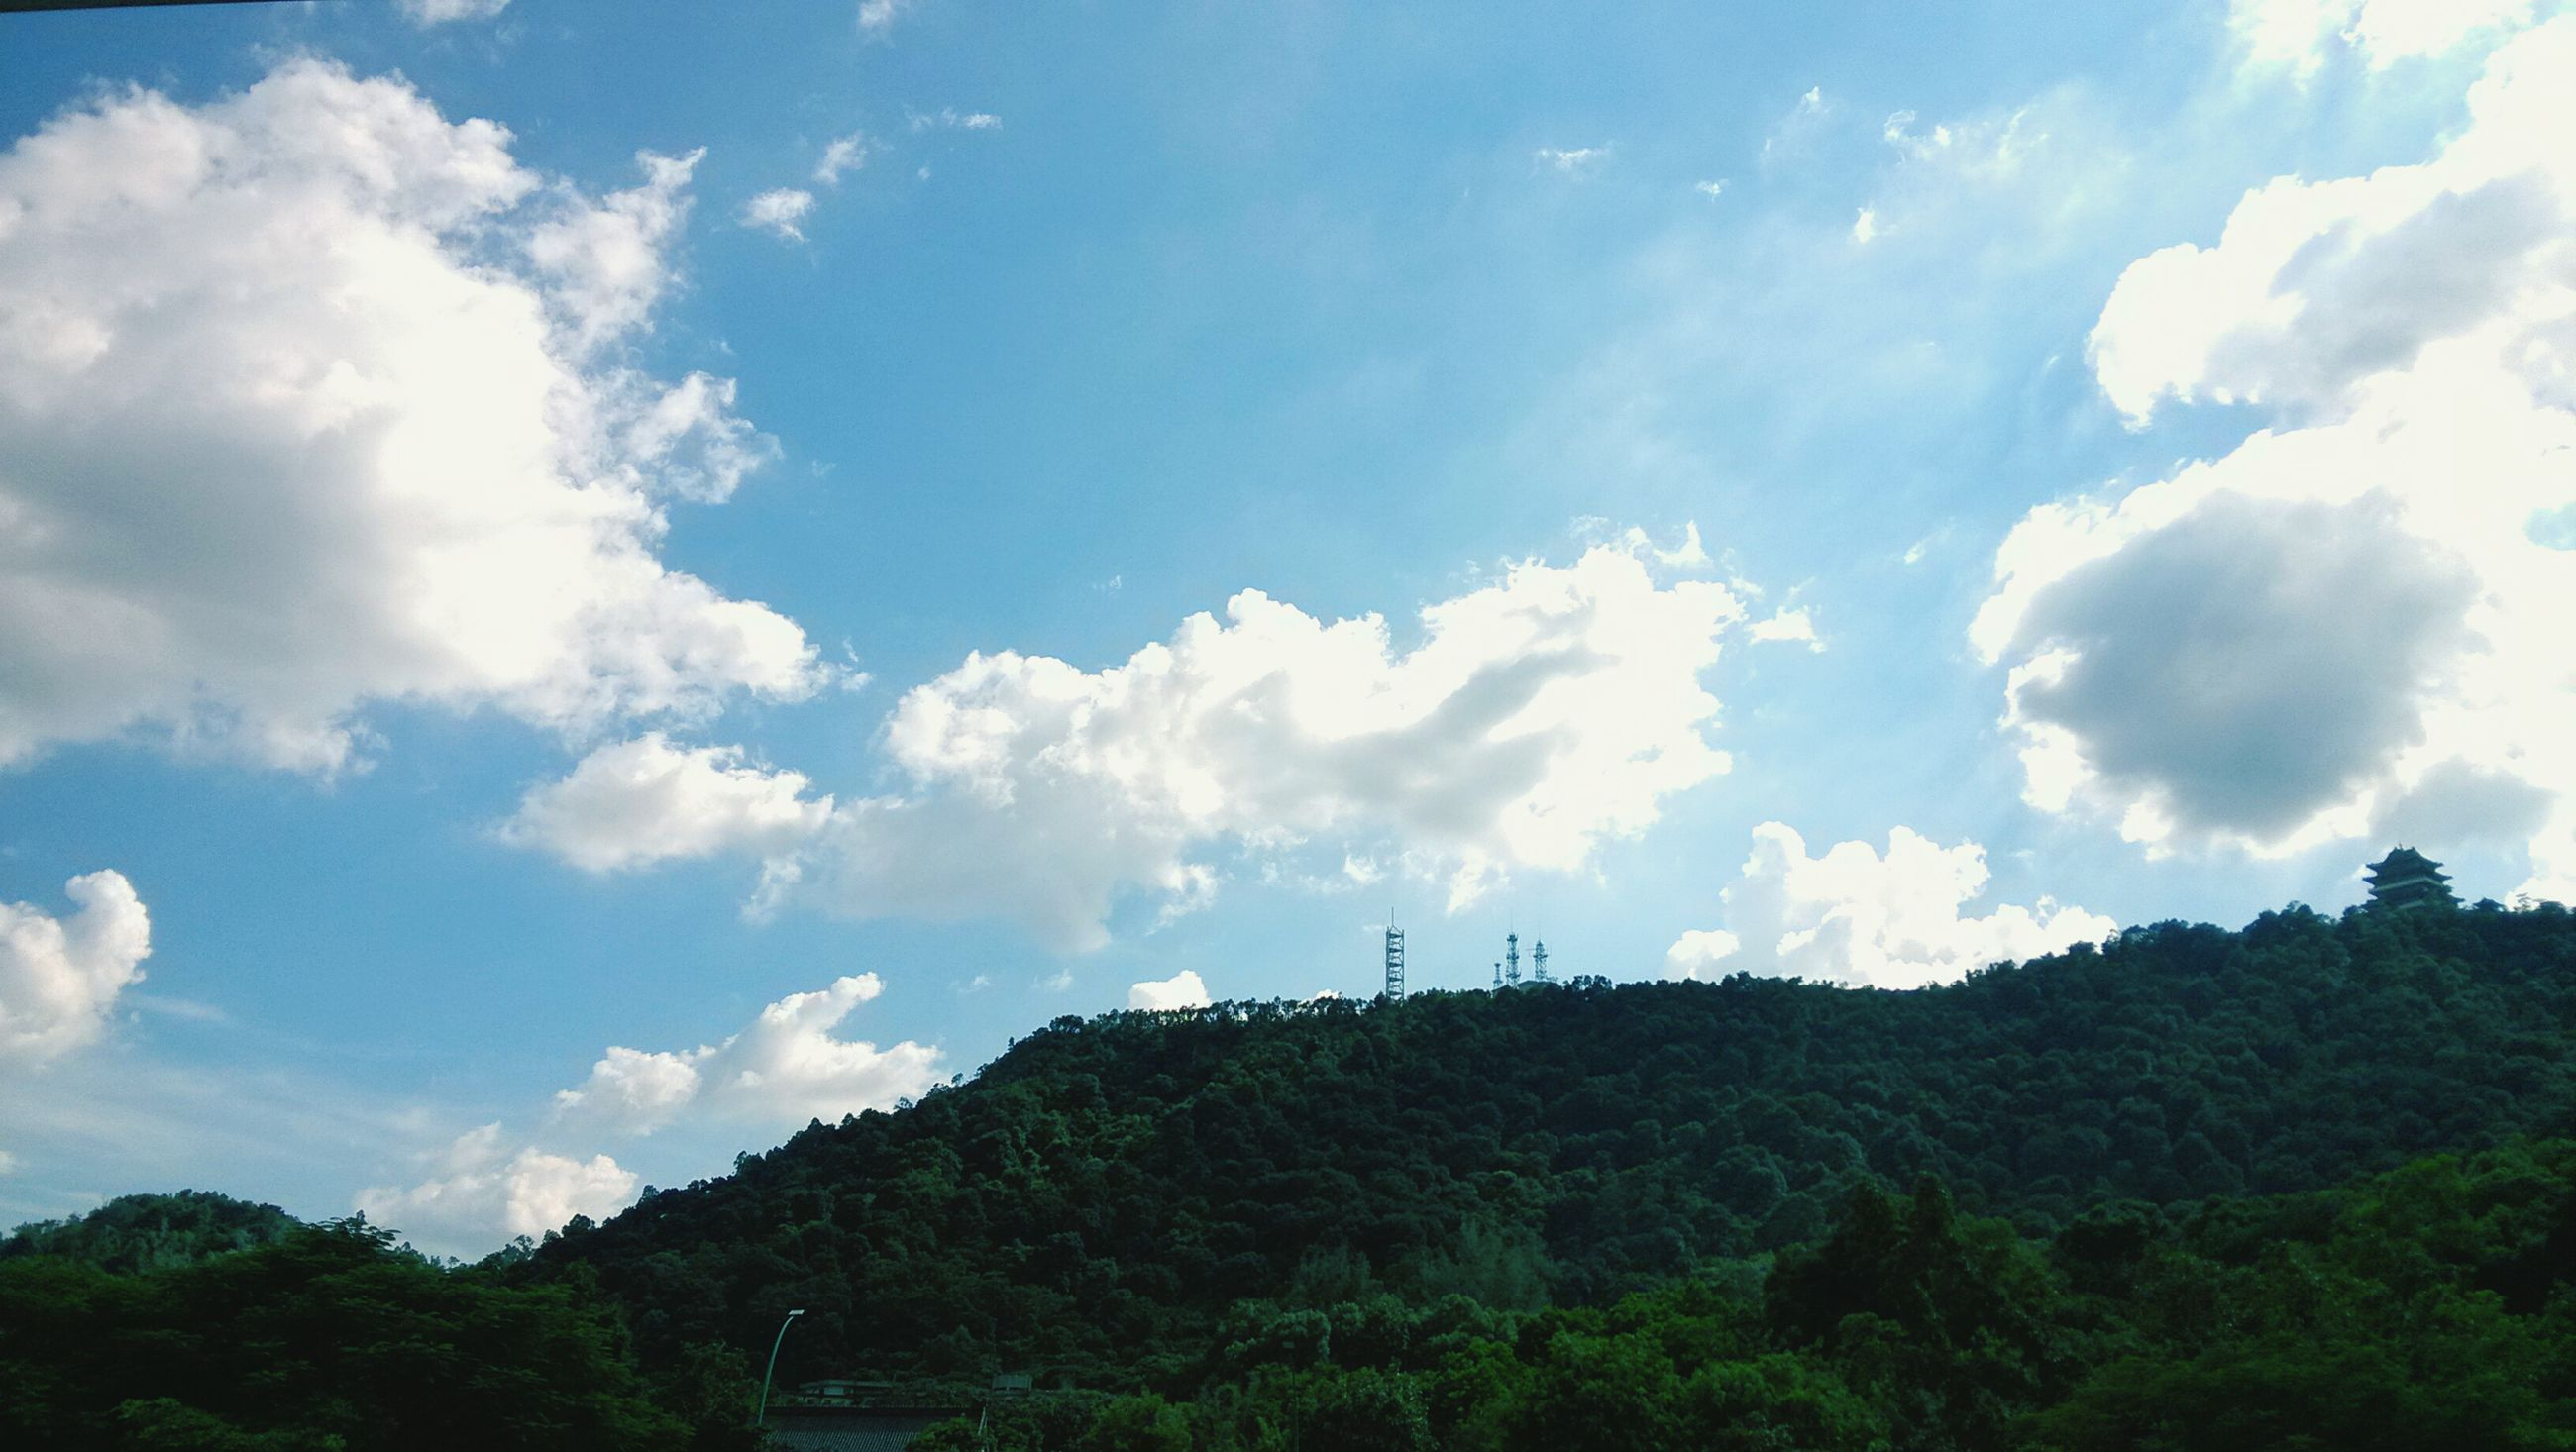 sky, tree, cloud - sky, mountain, tranquil scene, tranquility, scenics, landscape, beauty in nature, nature, cloud, low angle view, hill, blue, cloudy, non-urban scene, day, growth, idyllic, outdoors